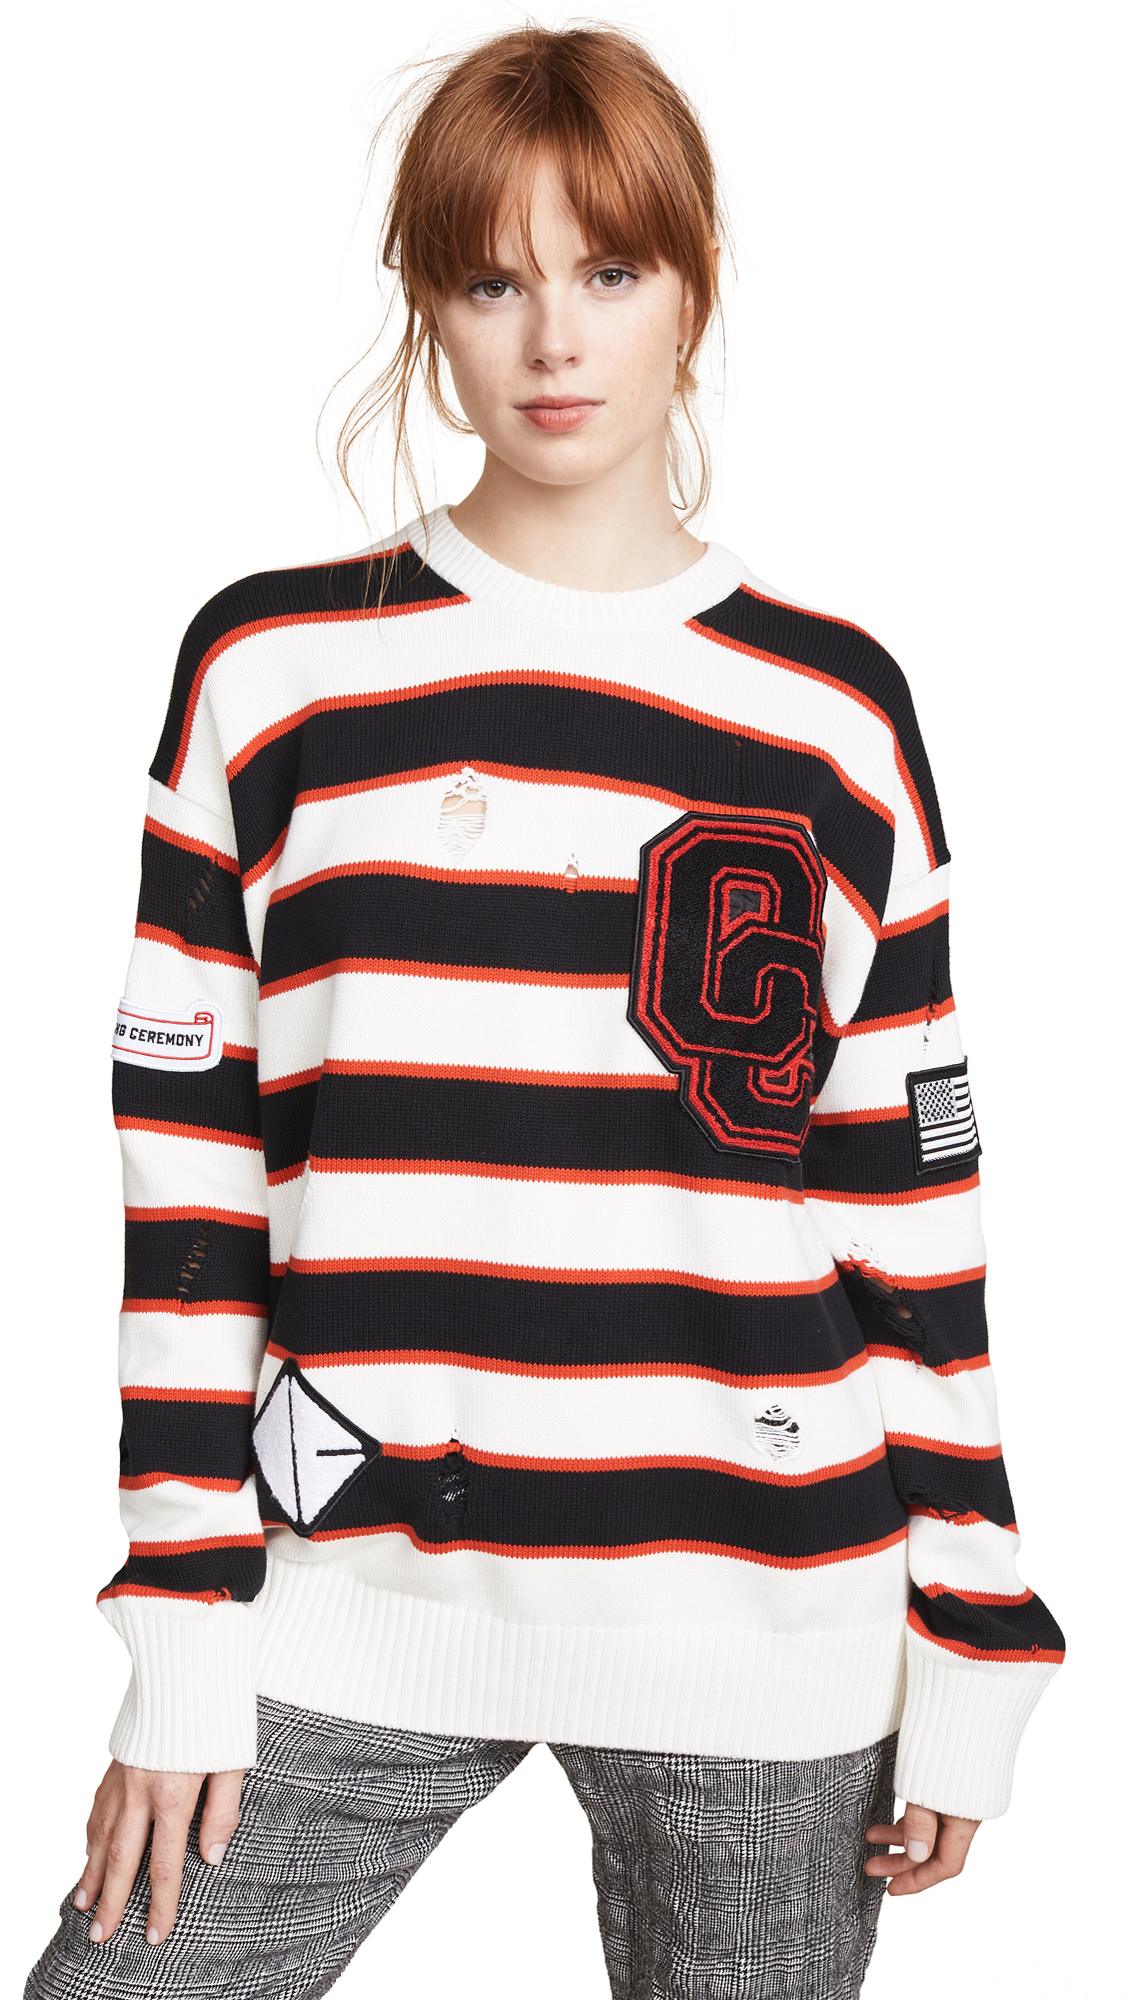 OPENING CEREMONY Varsity Appliquéd Distressed Striped Cotton-Blend Sweater, White Multi